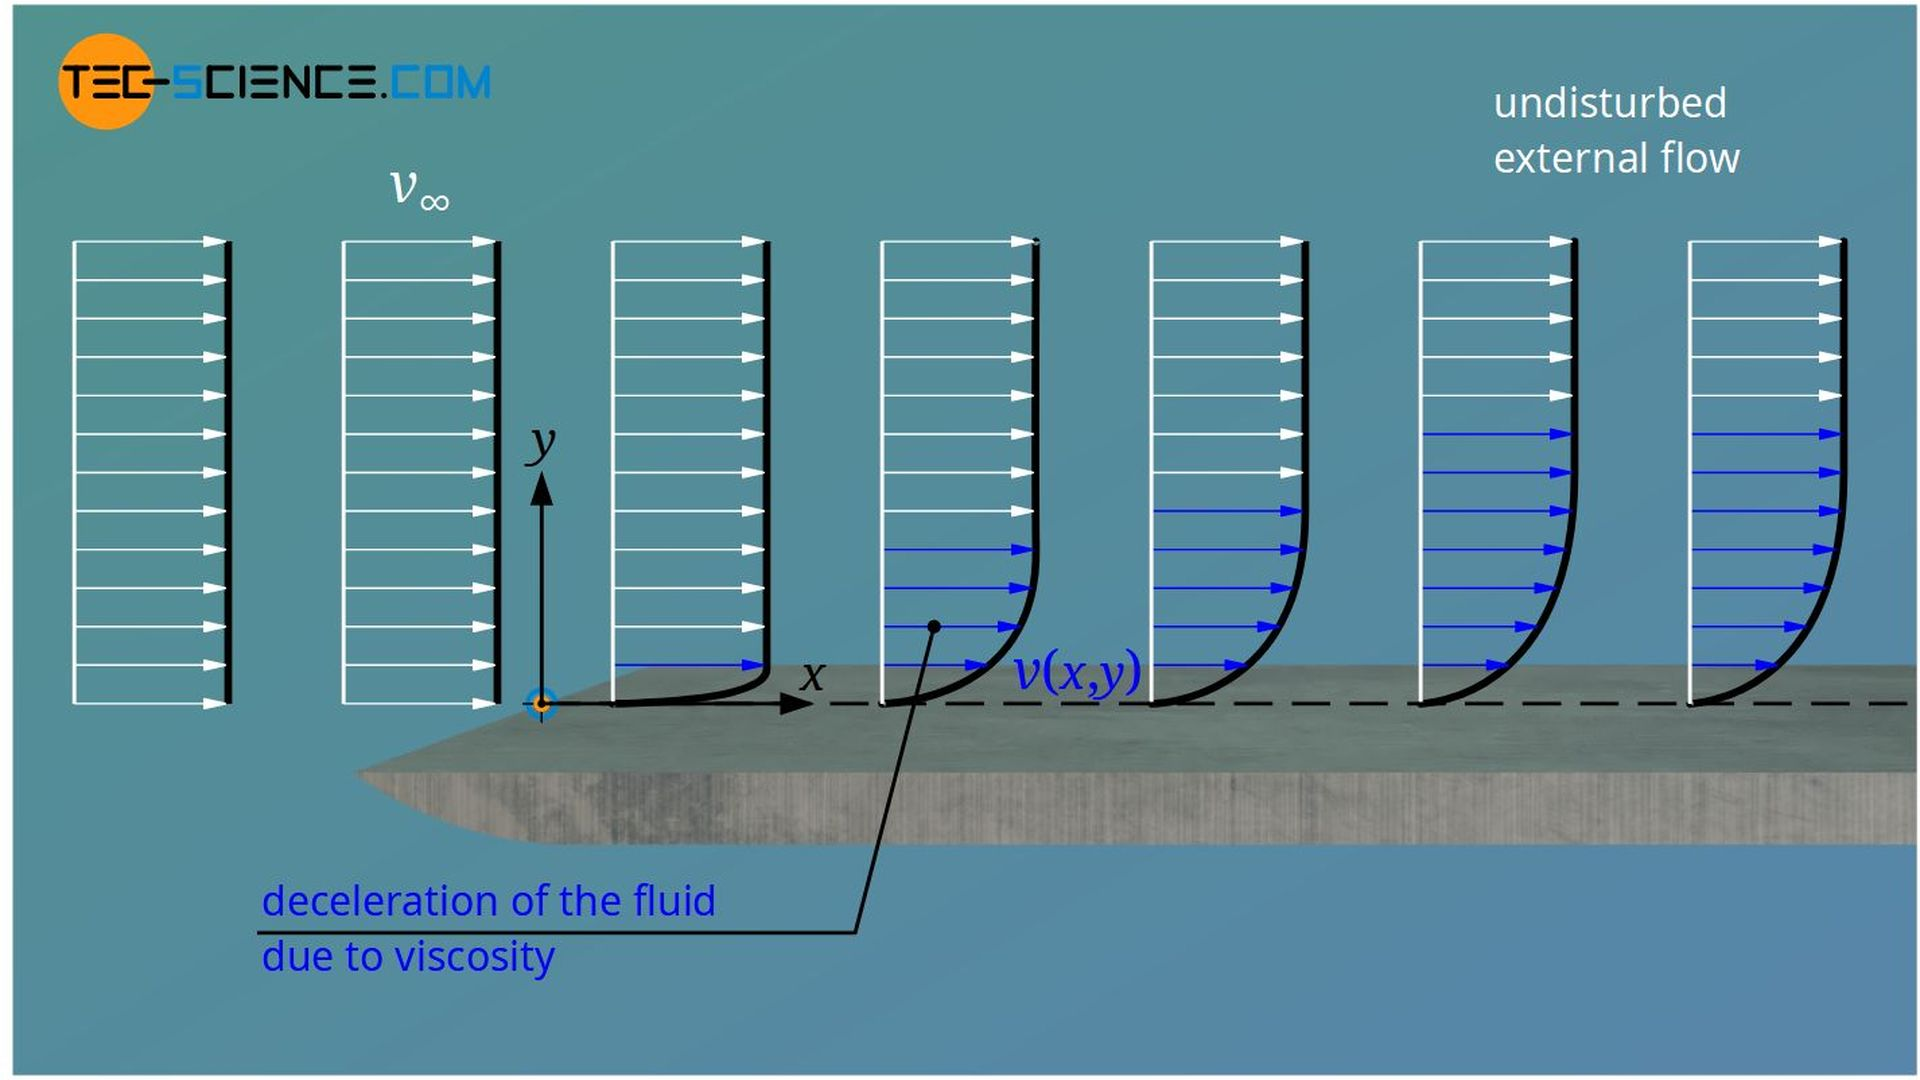 Deceleration of the fluid layers caused by shear stress due to the viscosity of the fluid